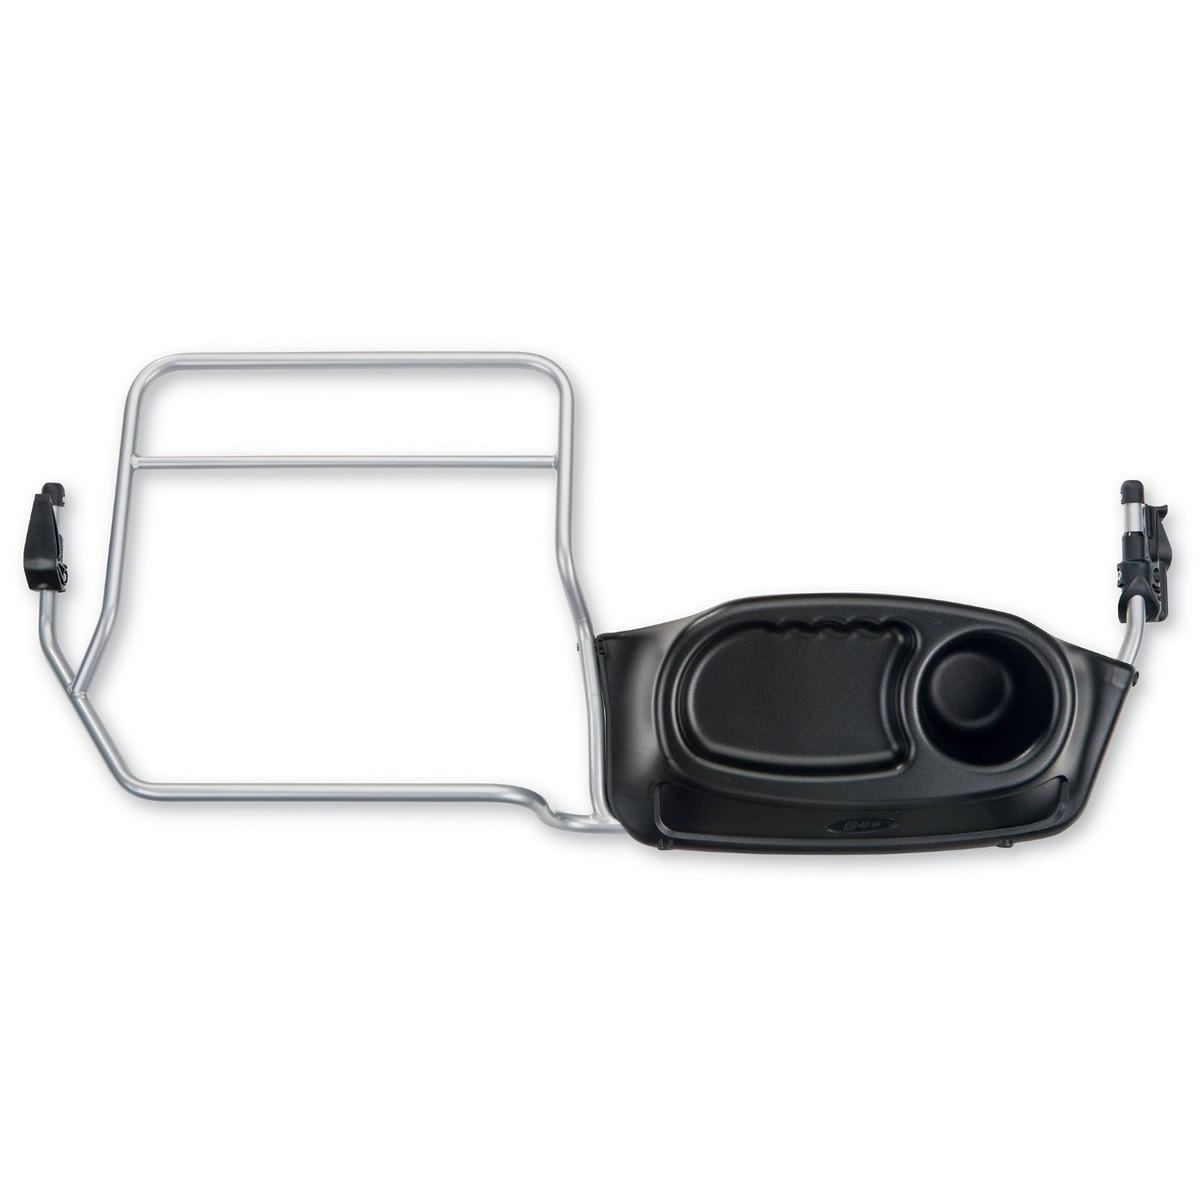 Bob Strollers Double Stroller Car Seat Adapter - Peg Perego